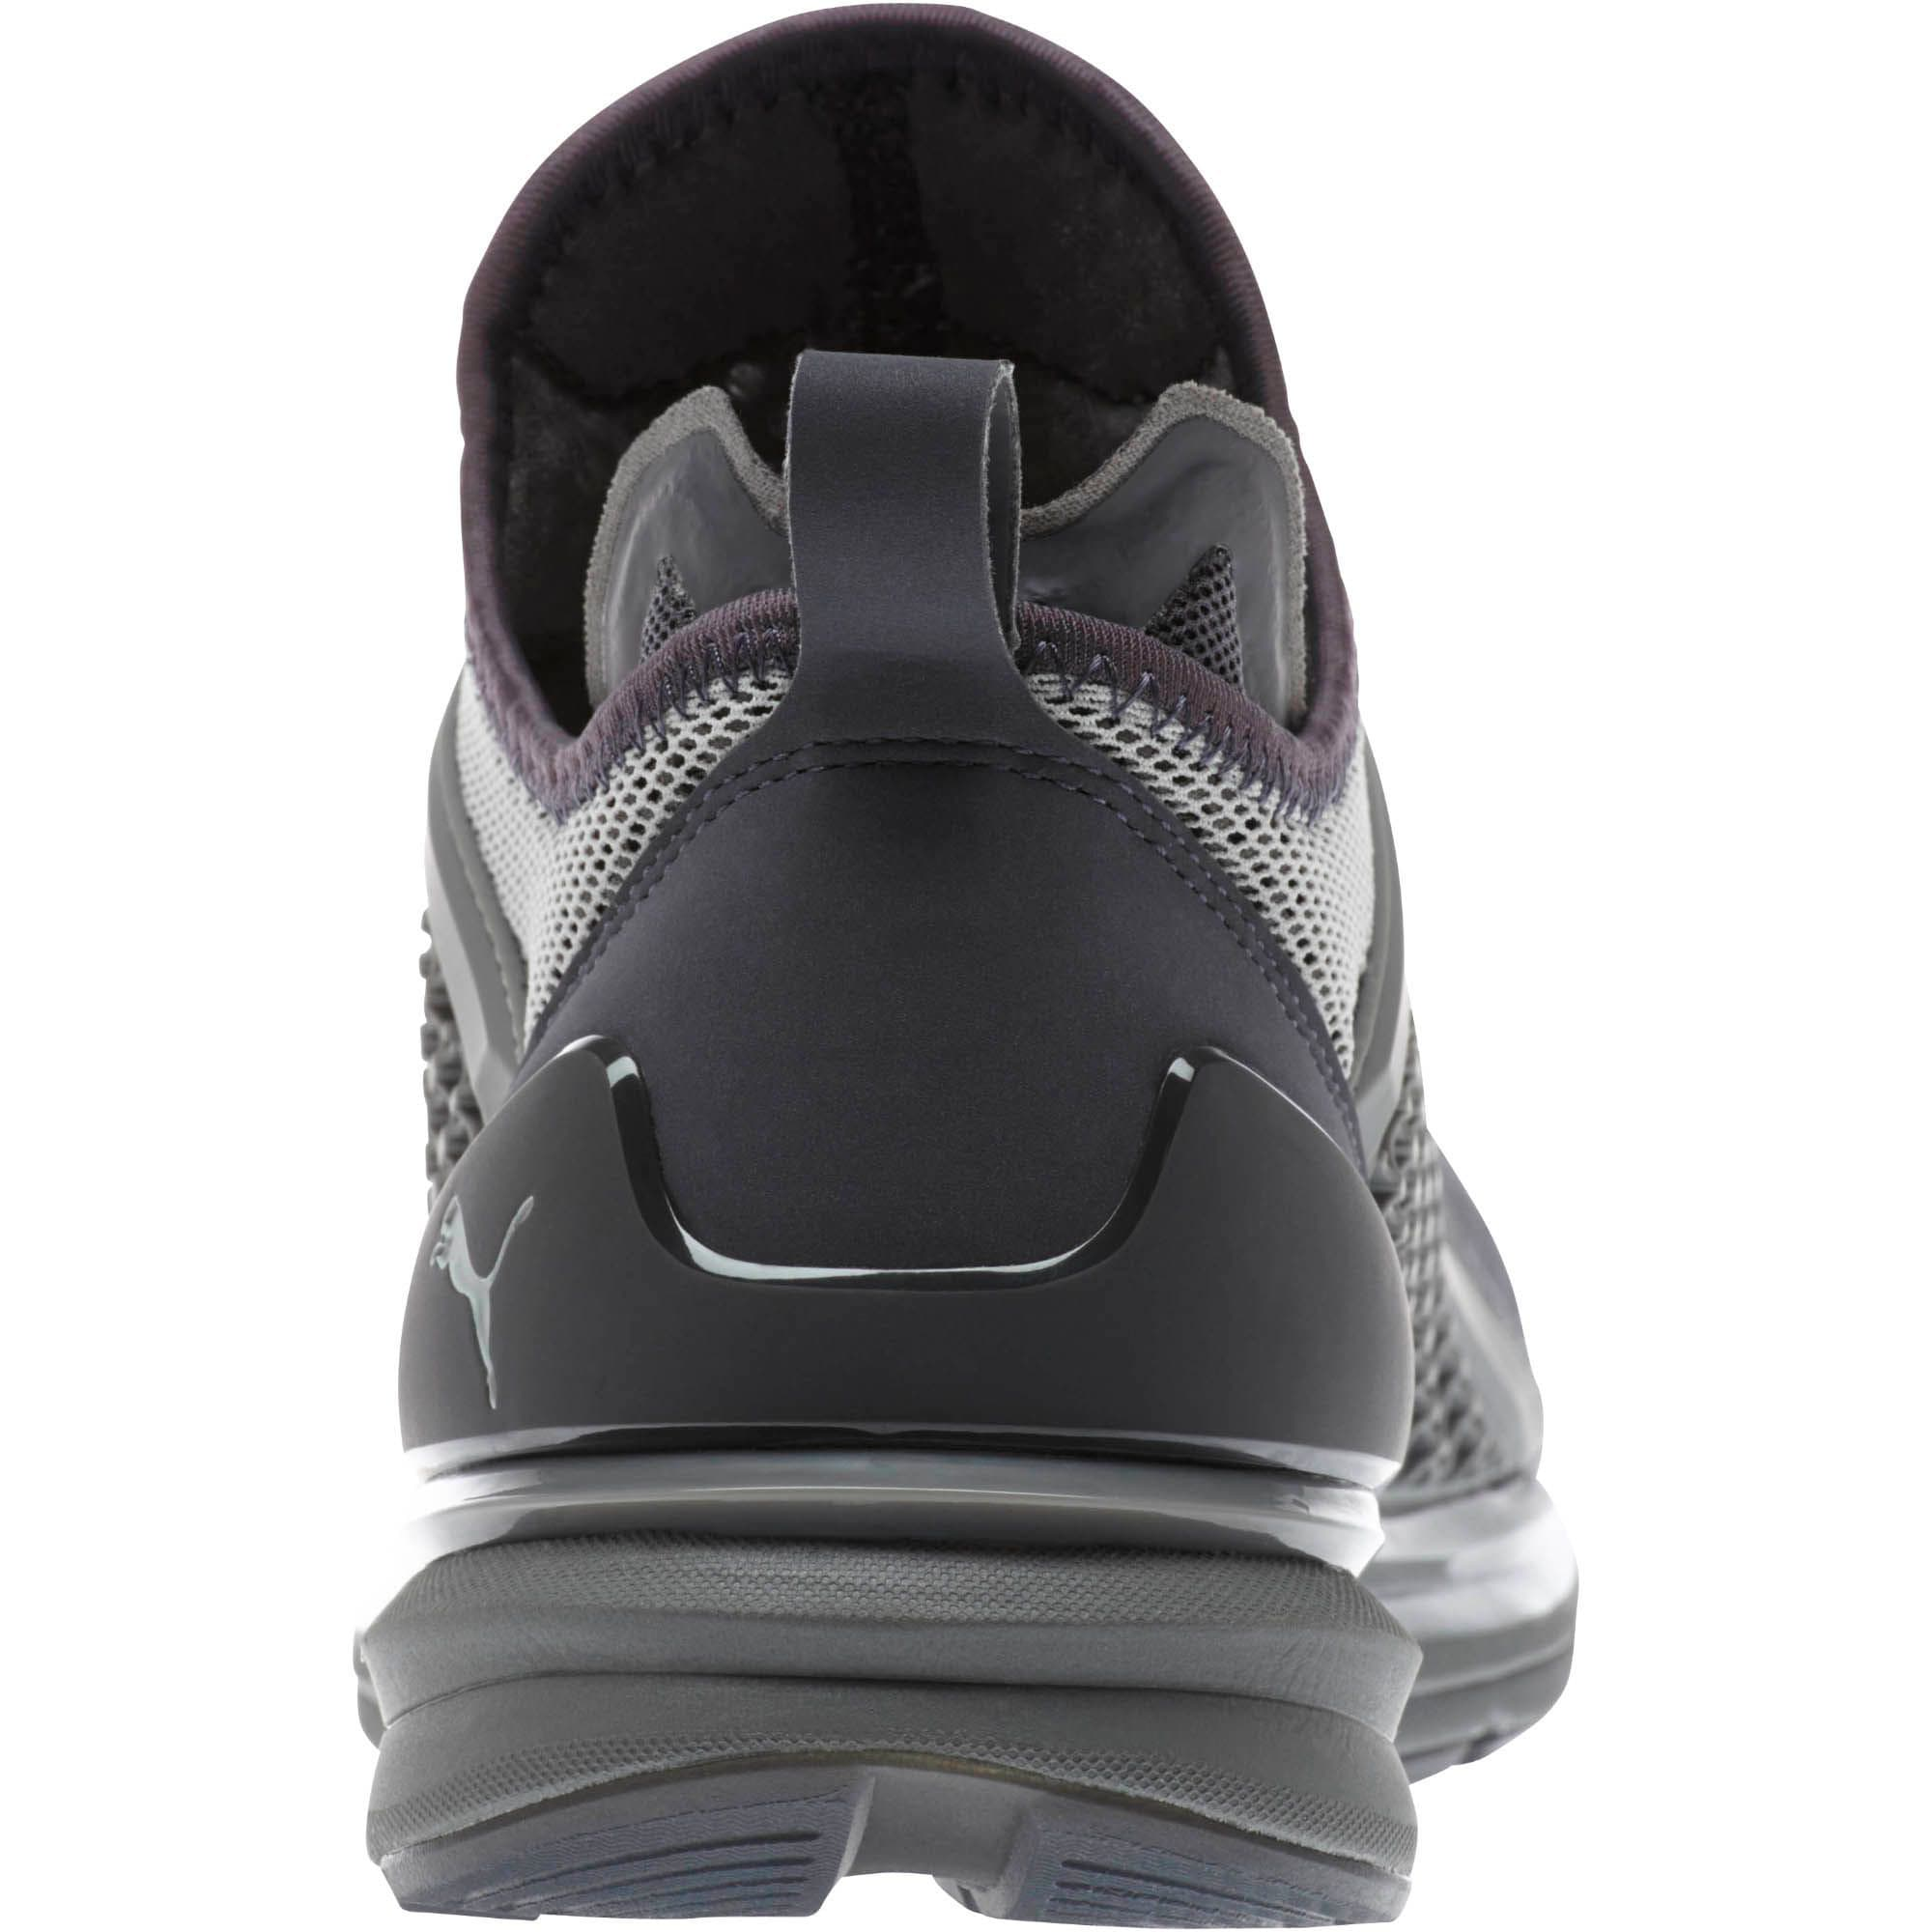 Thumbnail 4 of IGNITE Limitless Men's Running Shoes, Periscope-Gray Violet, medium